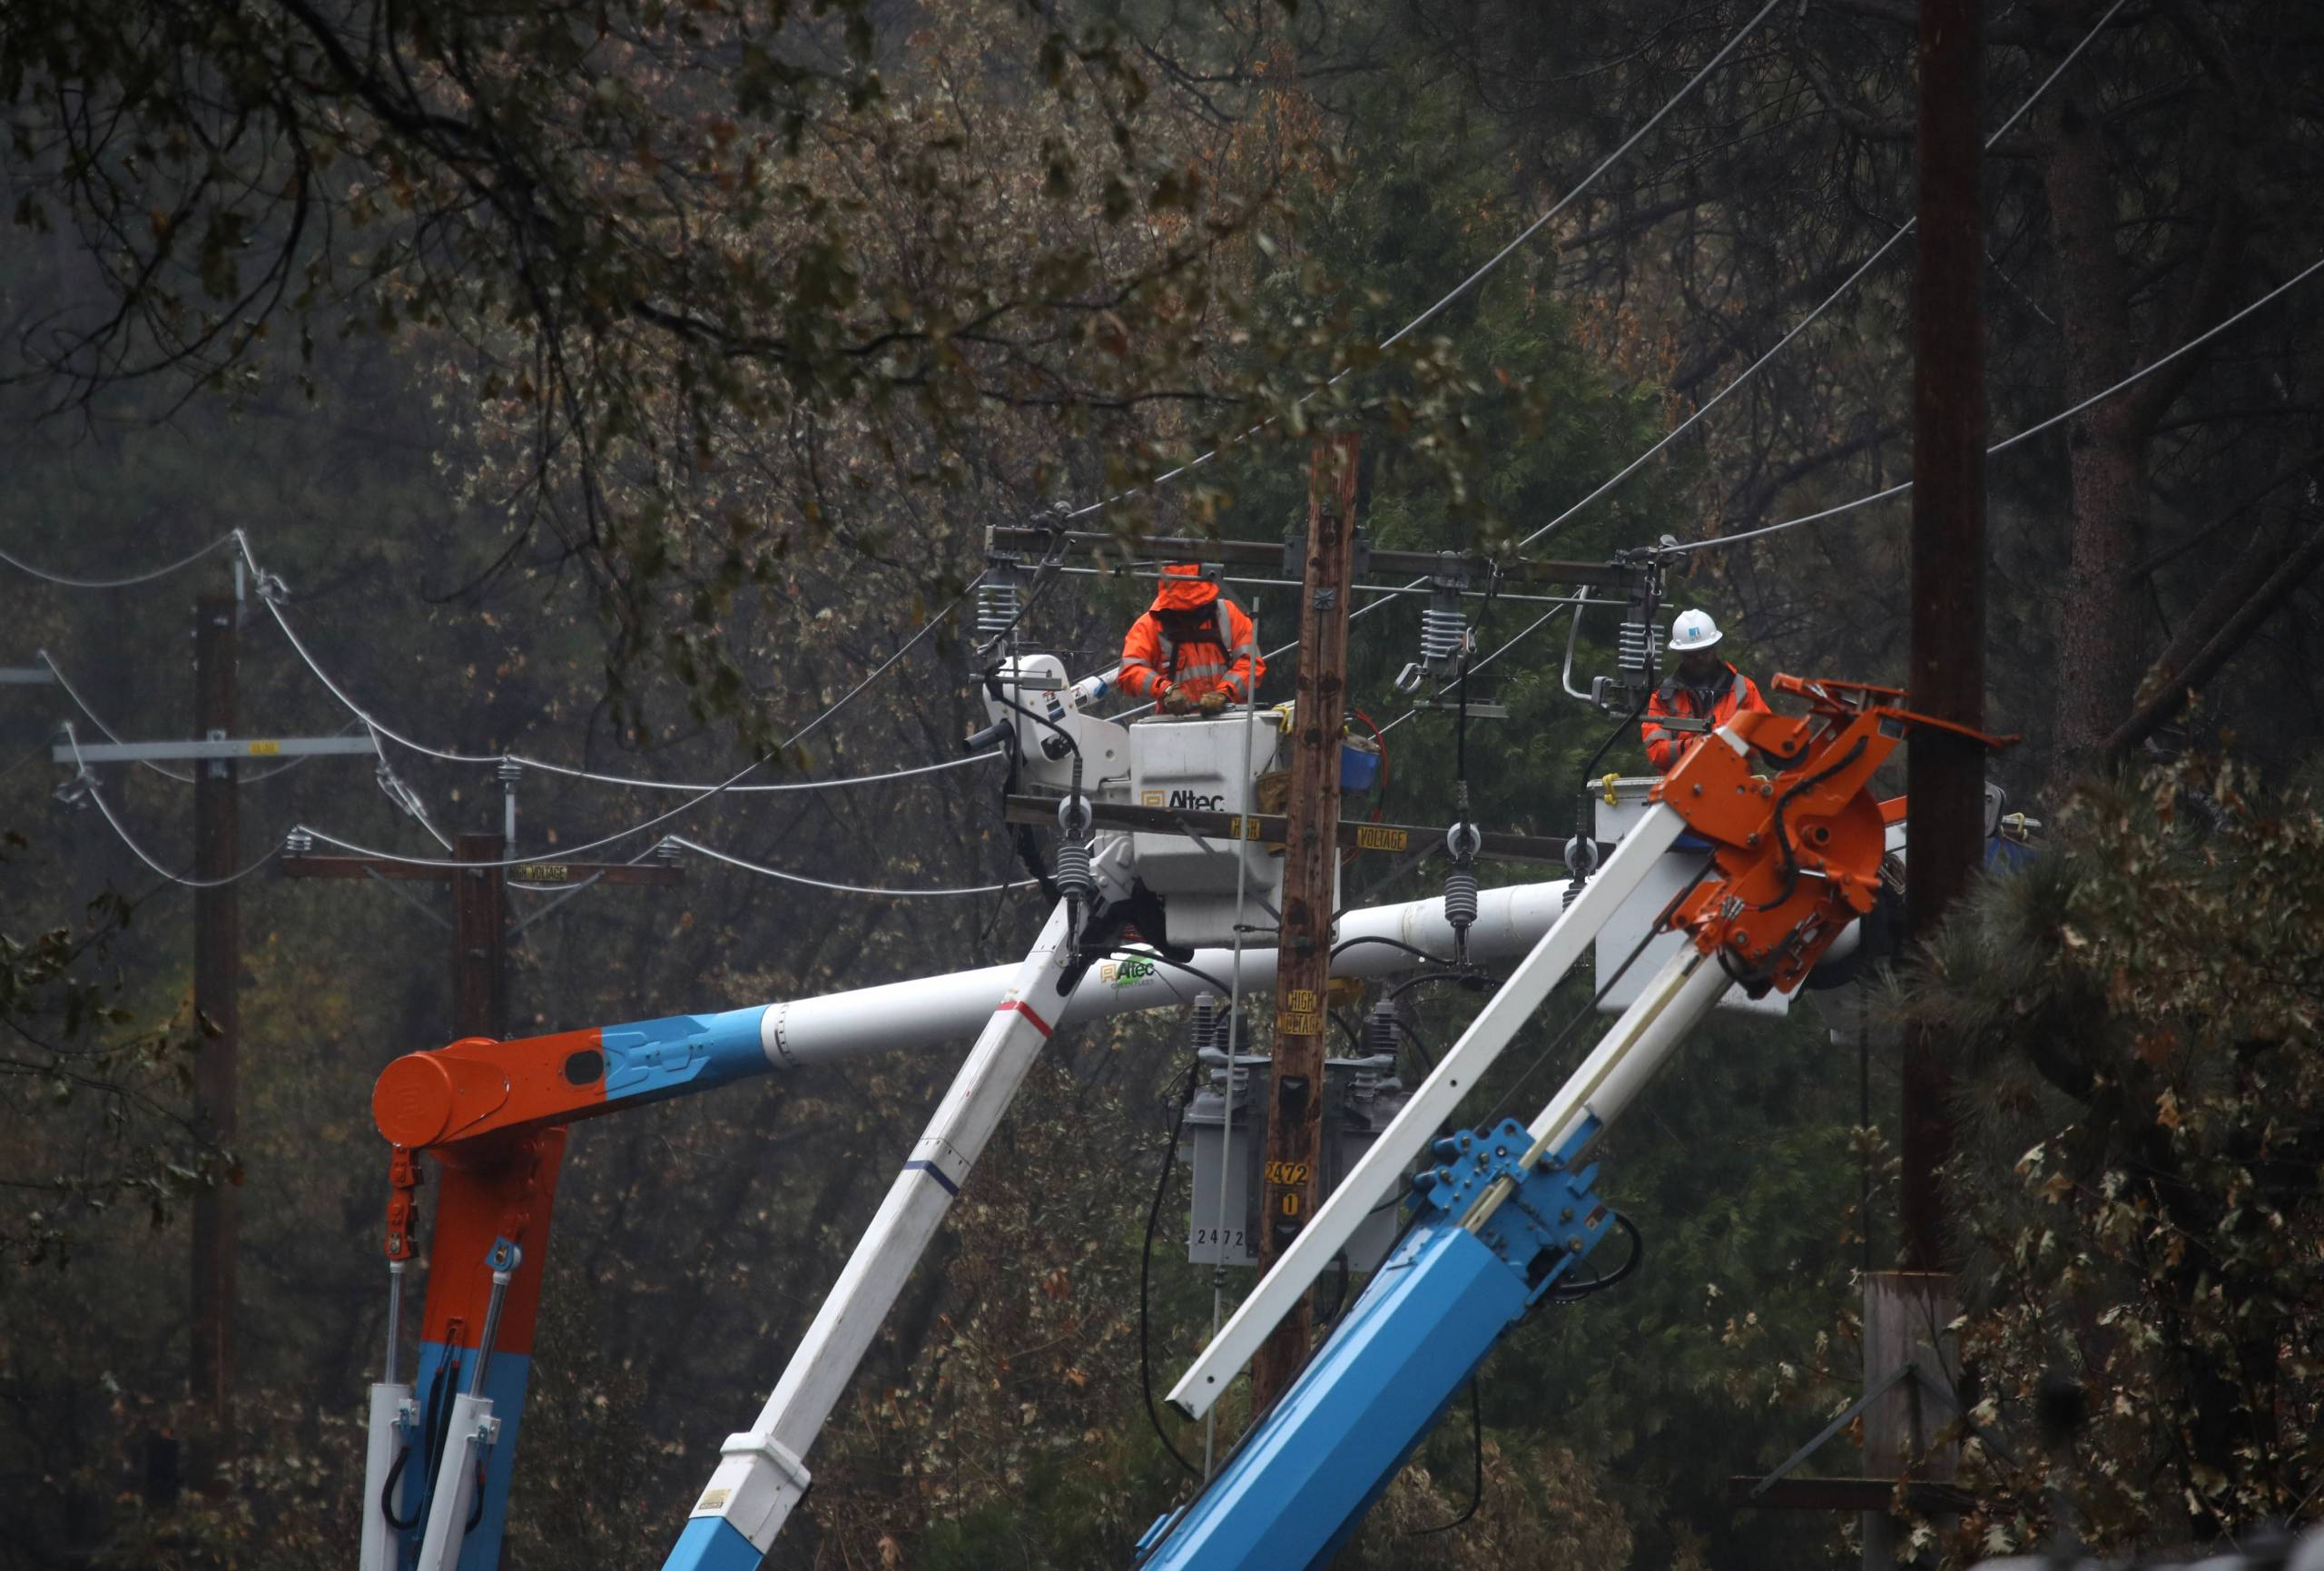 One worker is on top of a crane next to a power line.